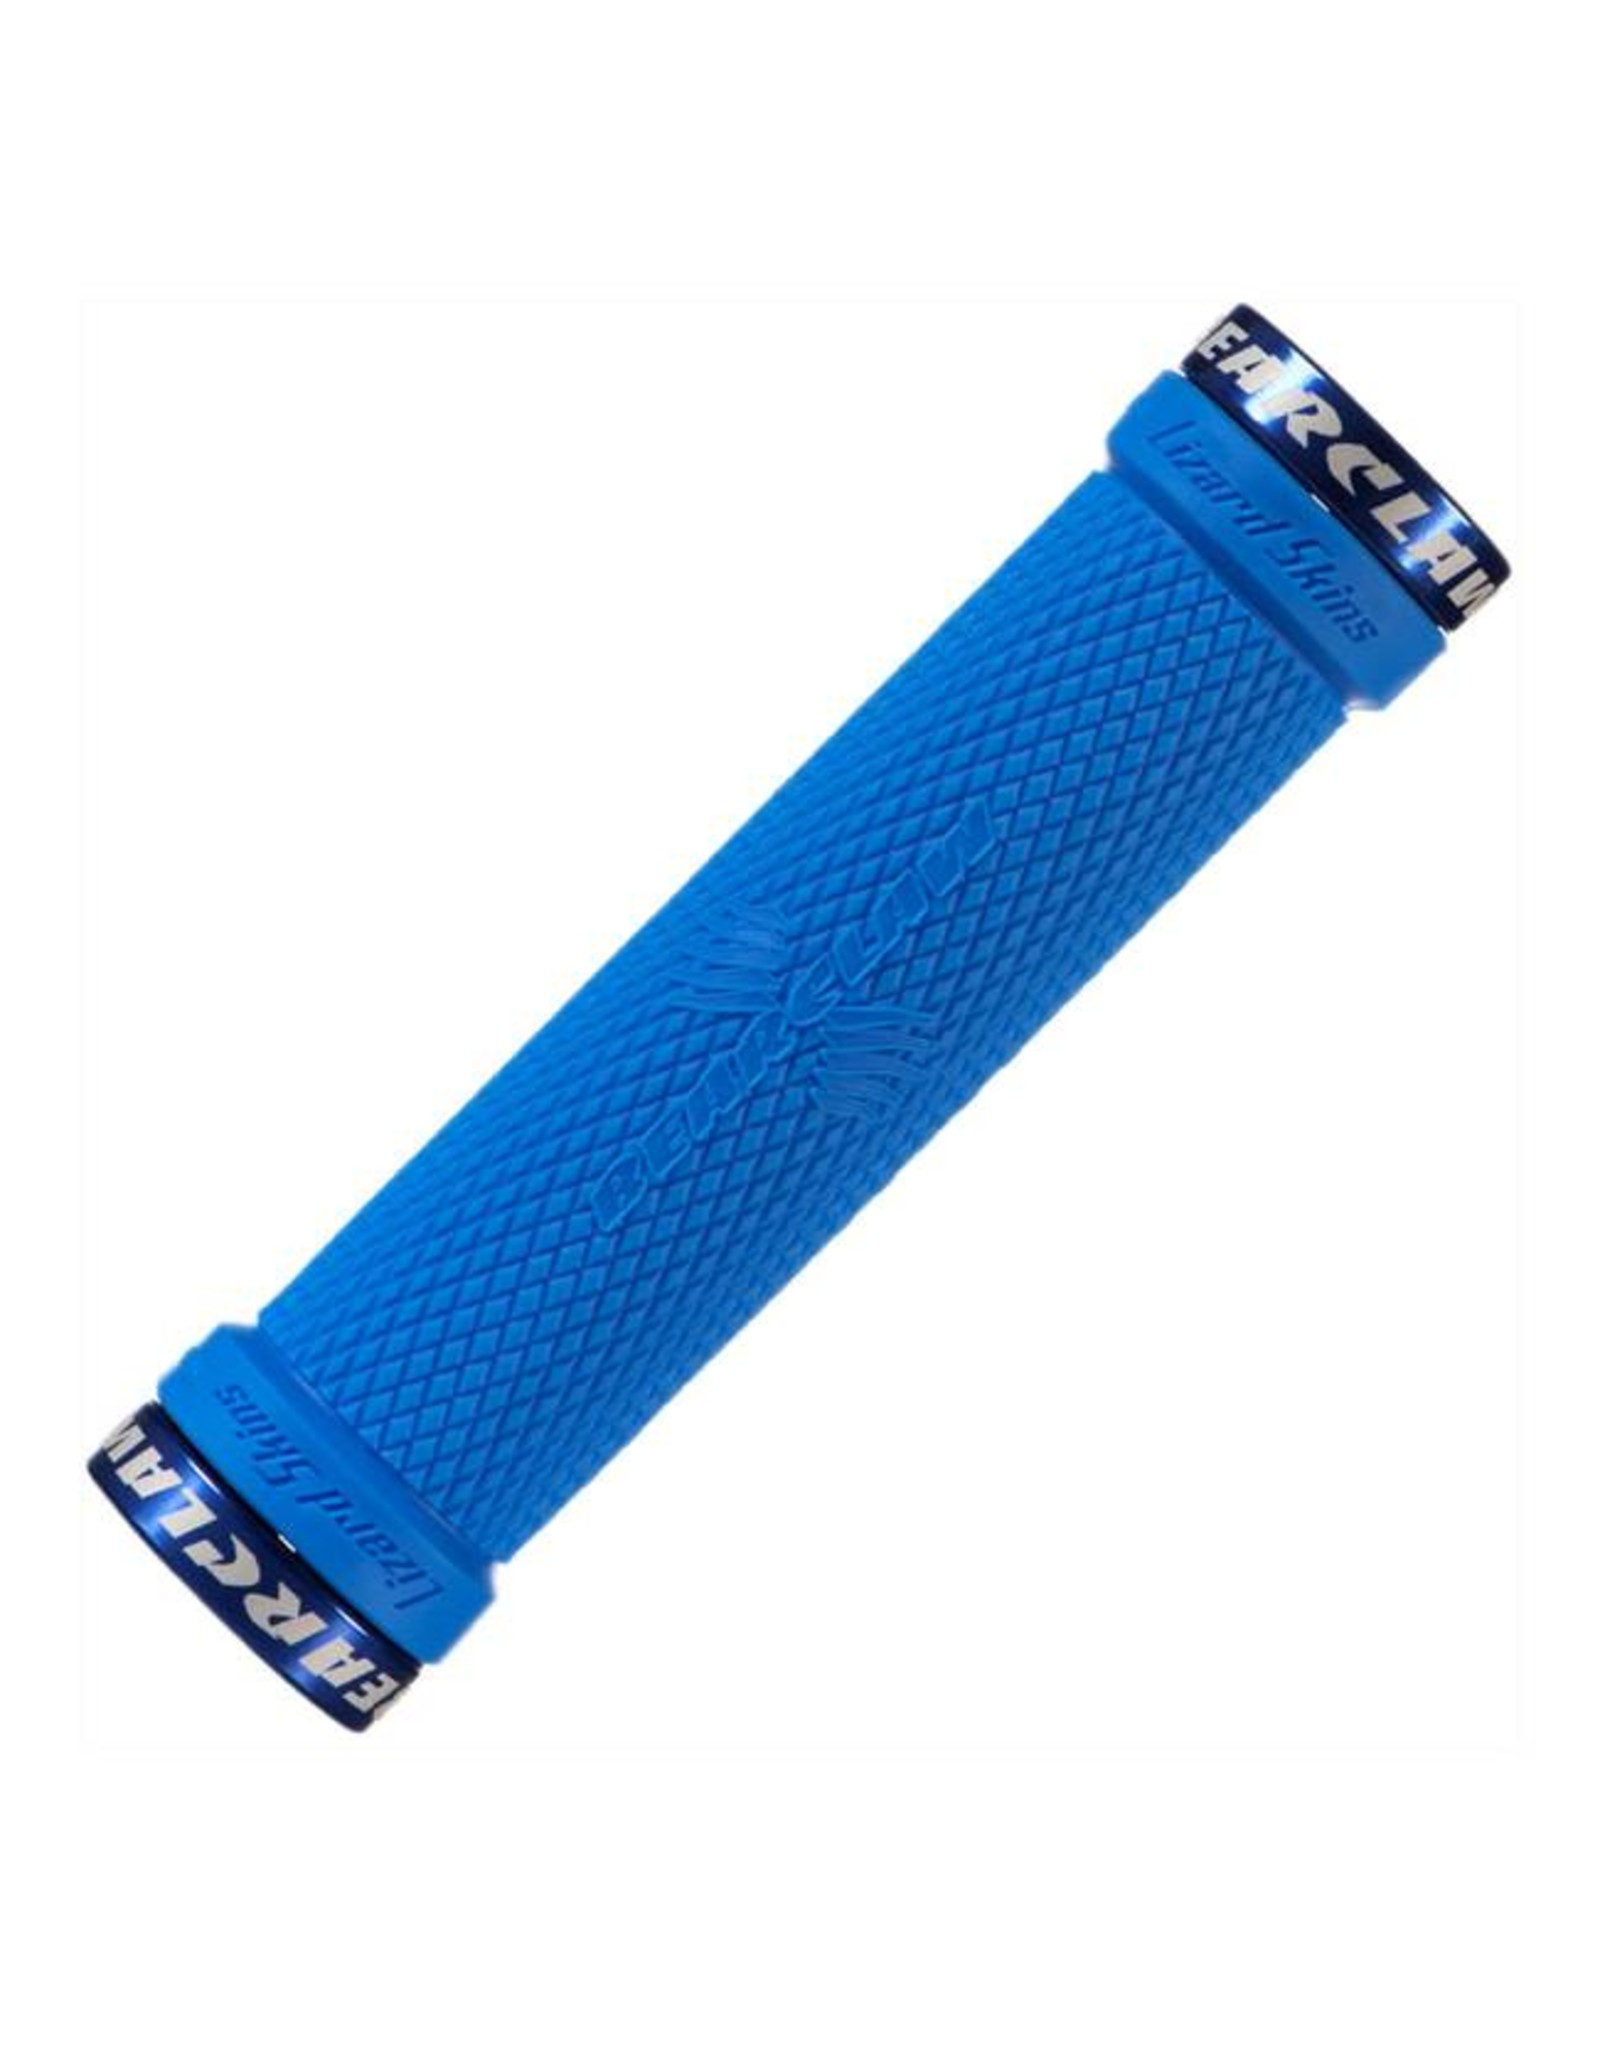 Lizard Skins Lizard Skins Bearclaw Lock On Grips Ice Blue